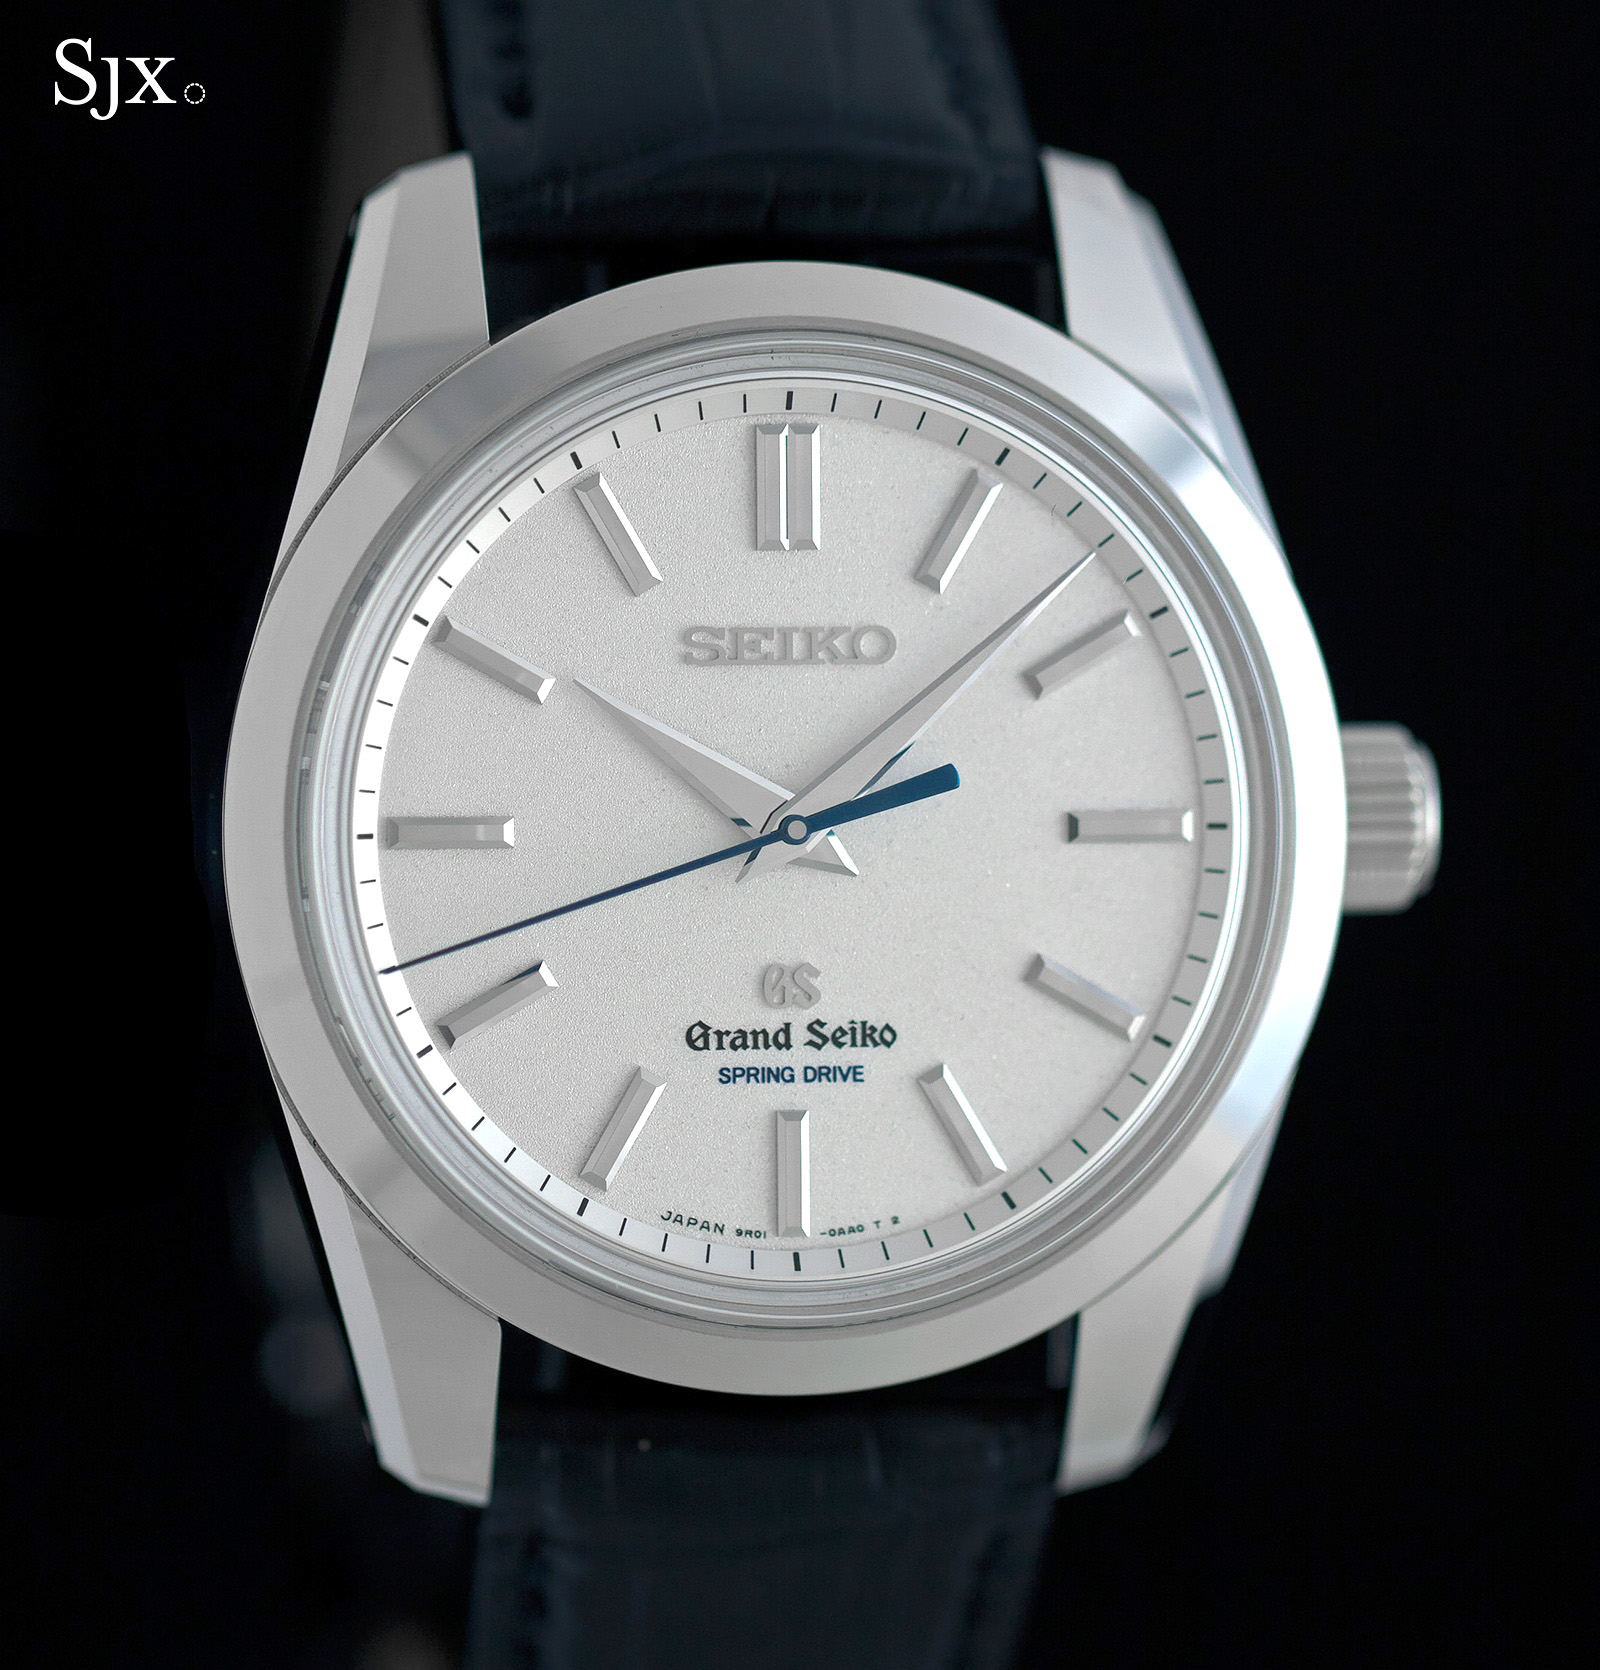 Grand Seiko Spring Drive 8 Day Power Reserve SBGD001 - 1